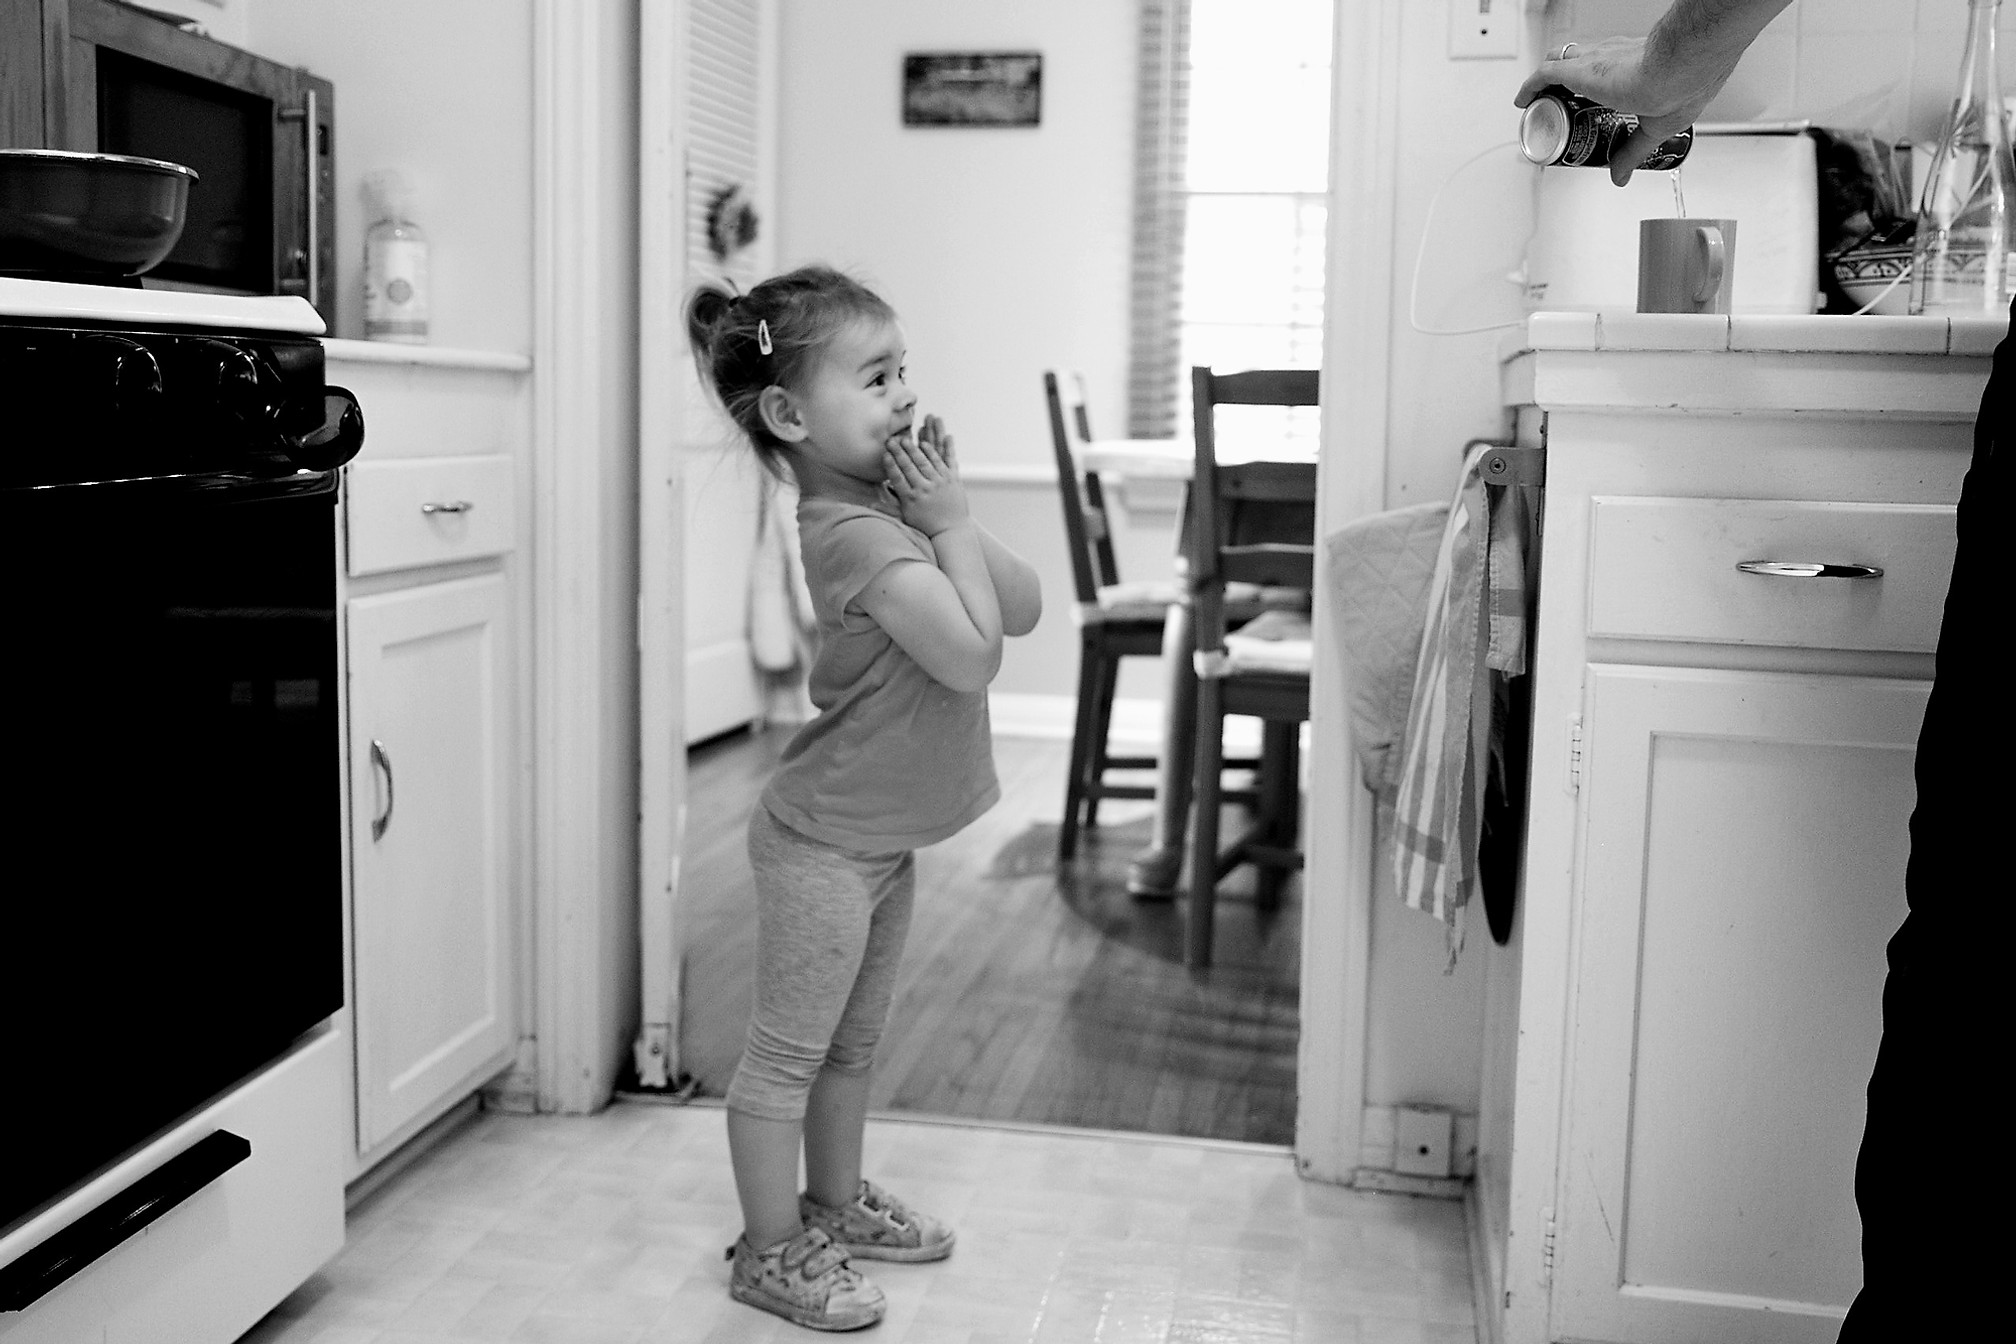 Lifestyle Family PDocumentary Family Session | Family Portrait | Los Angeles | Kid waiting for her dad to pour her drink | Childhood | Family Photographer | Story Telling | Family Photoshoot